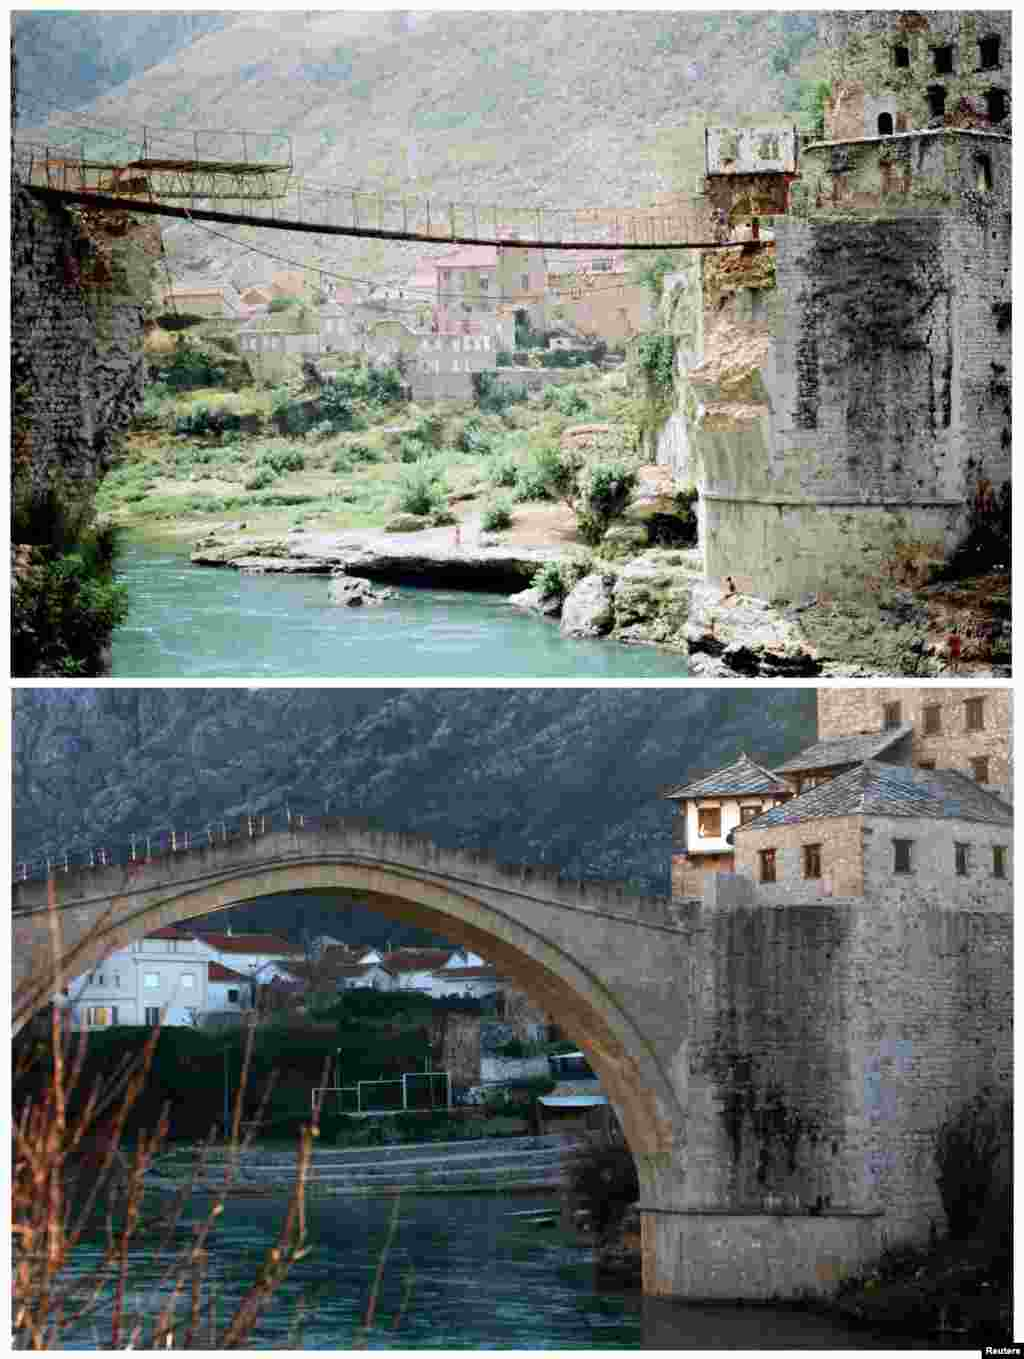 Men cross a river using a makeshift bridge in Mostar after the destruction of Mostar's centuries-old bridge in November 1993, which was later rebuilt. The same location is seen in the bottom picture on February 23, 2013.